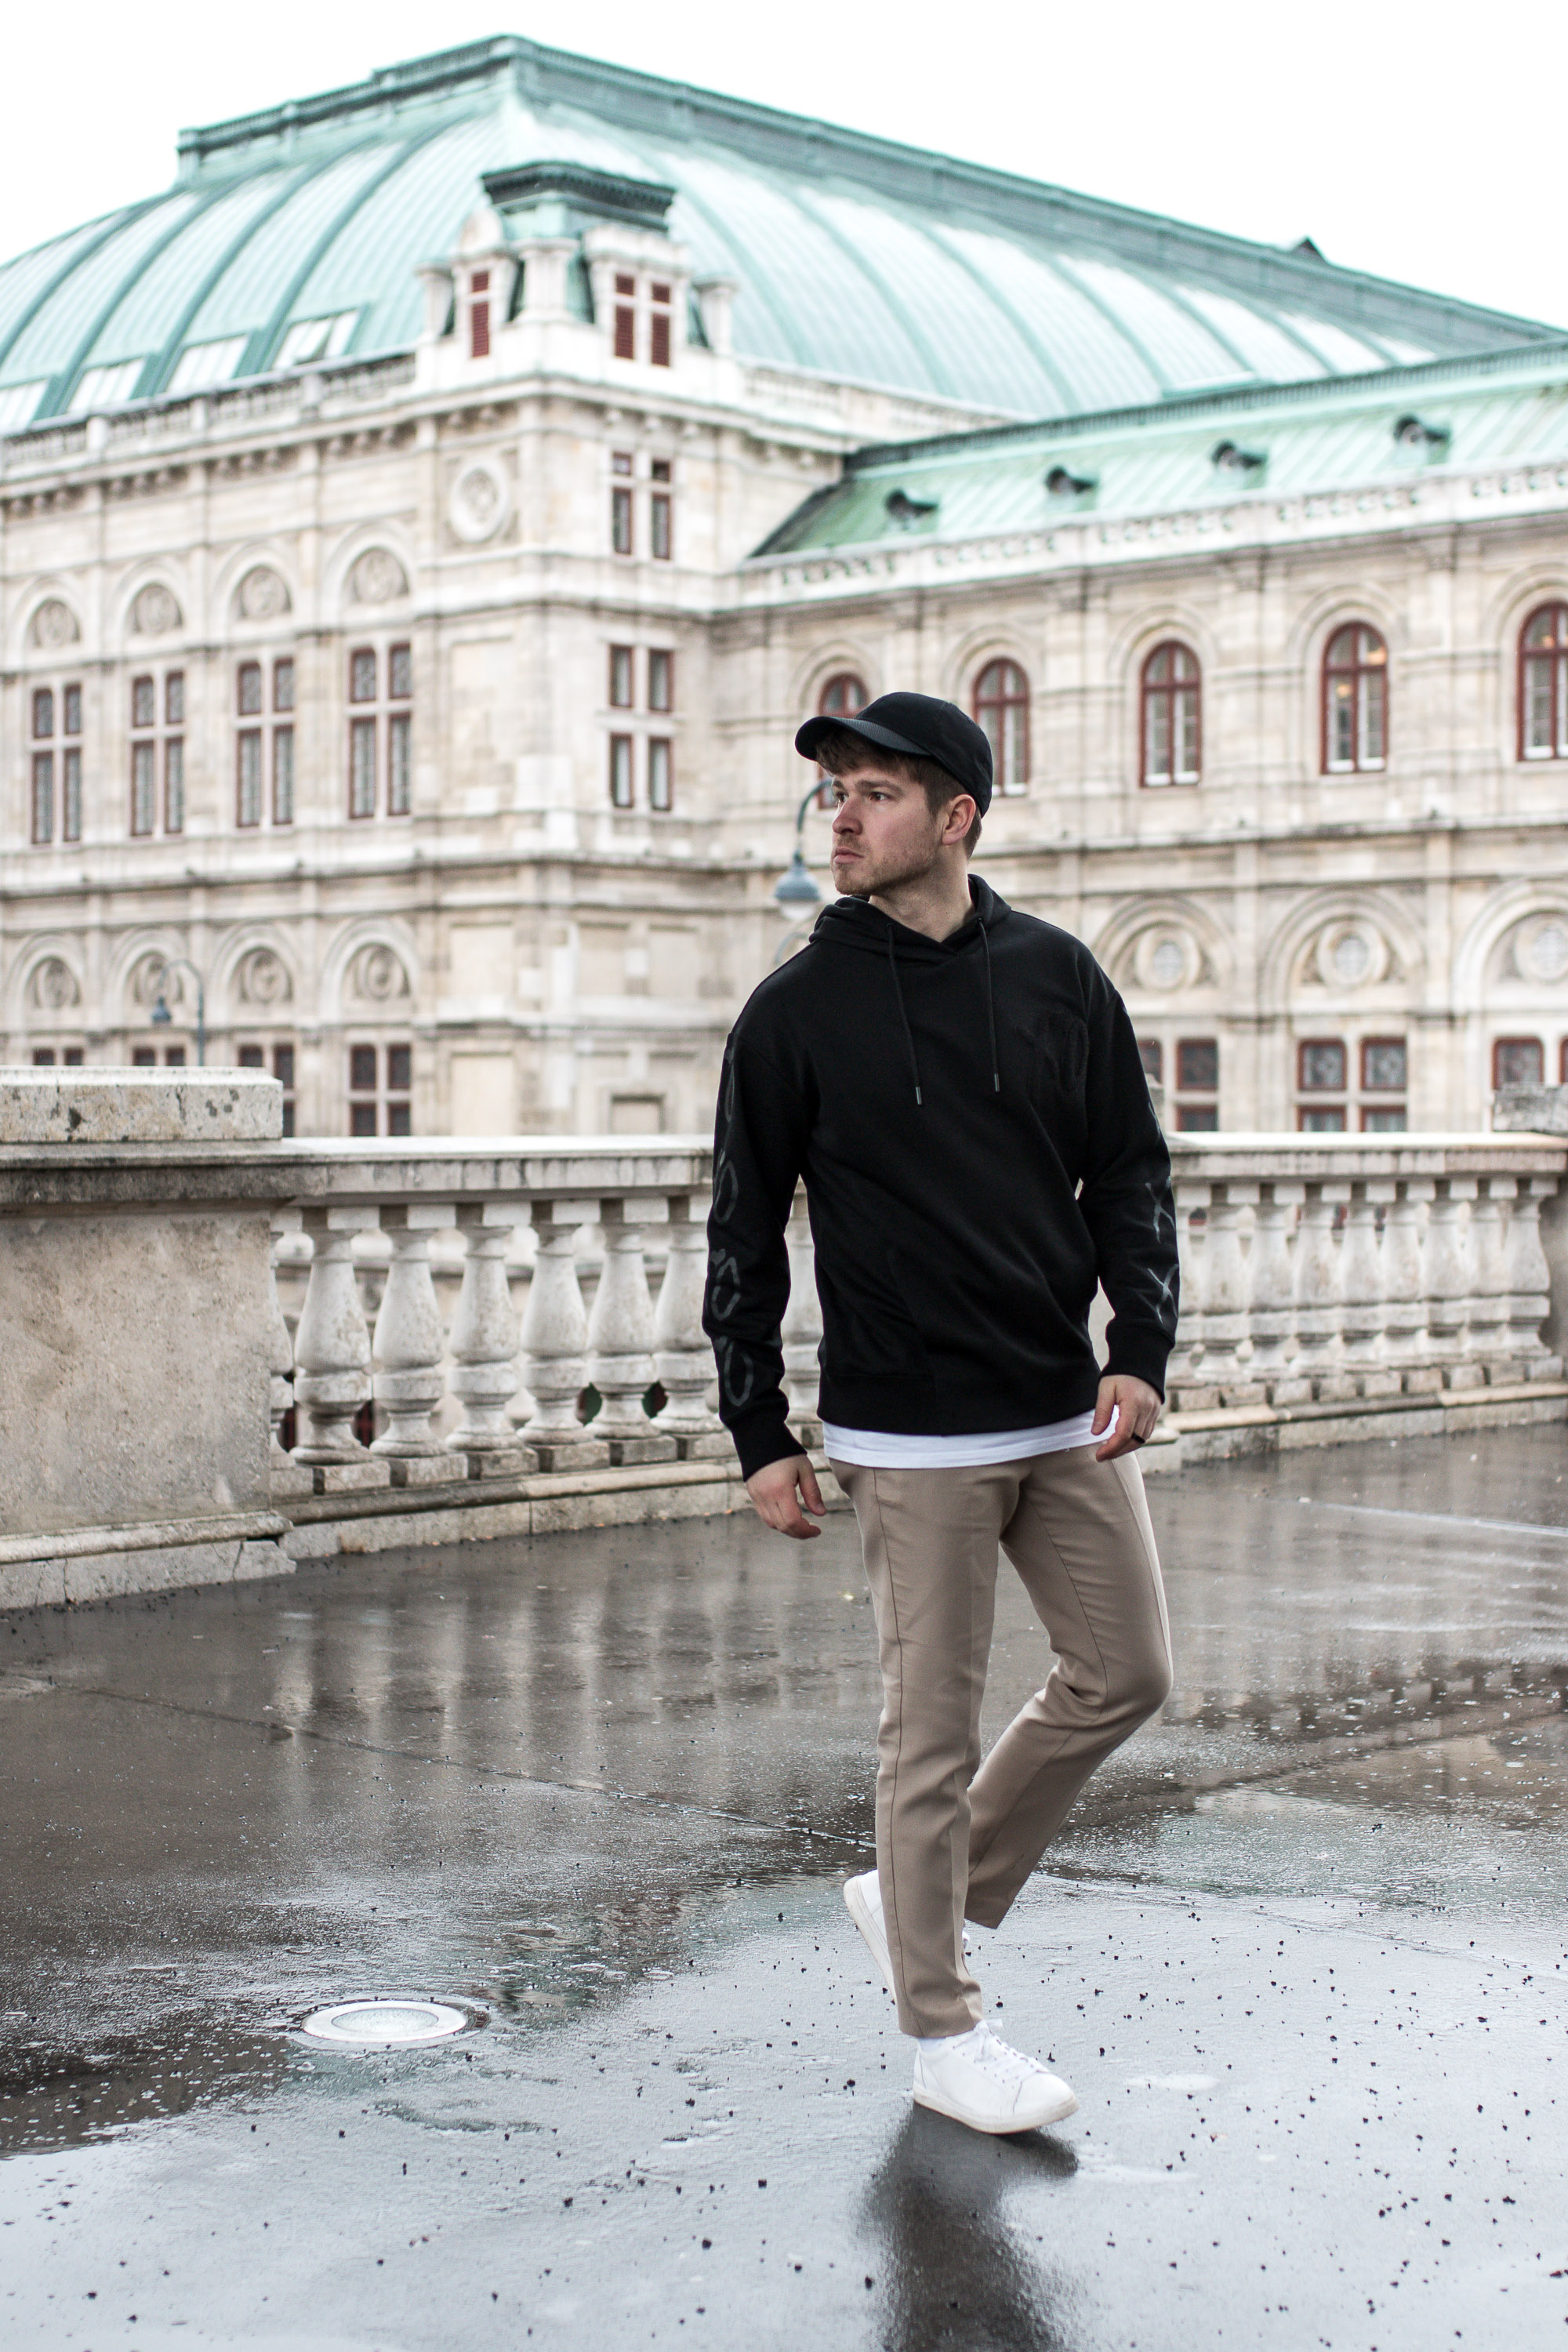 H&M Spring Icons by The Weeknd - Meanwhile in Awesometown Austrian Mens Fashion Blogger - Wiener Blogger 7